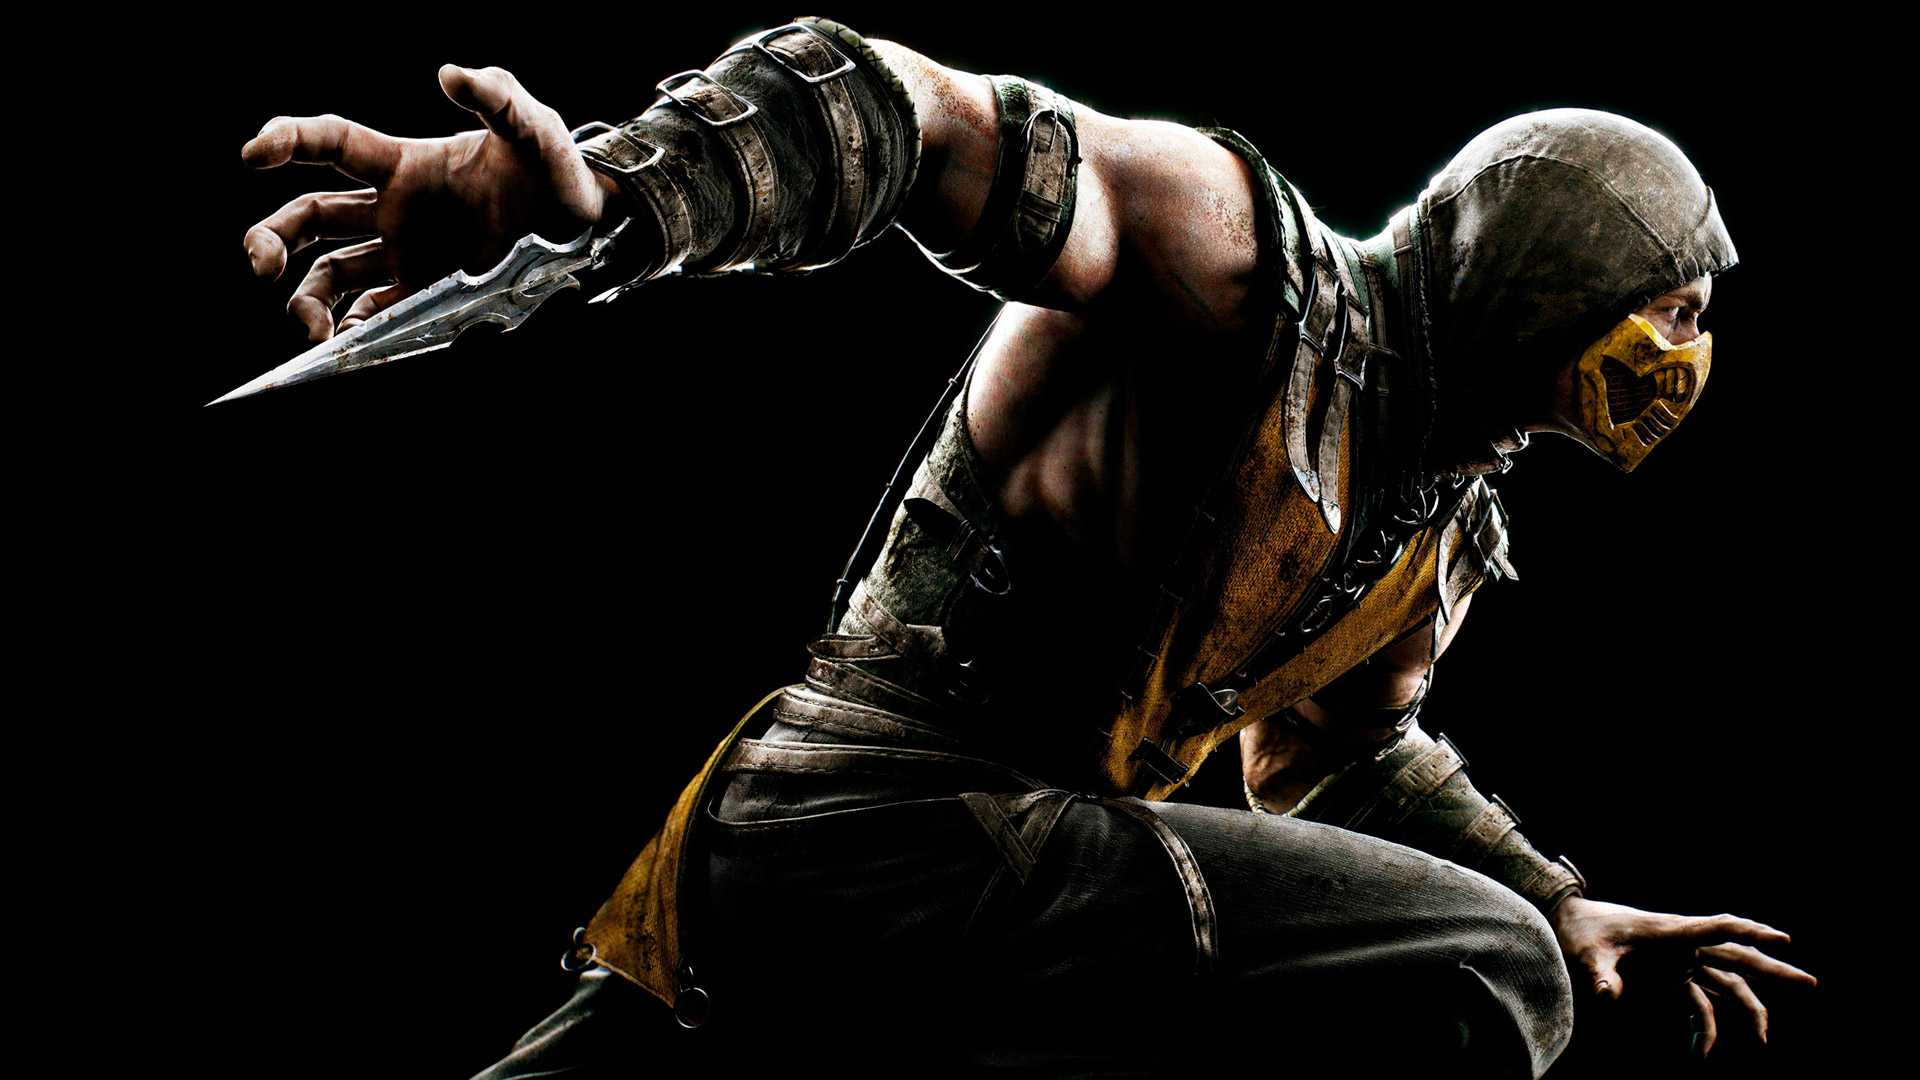 Free Mortal Kombat X Wallpaper in 1920x1080